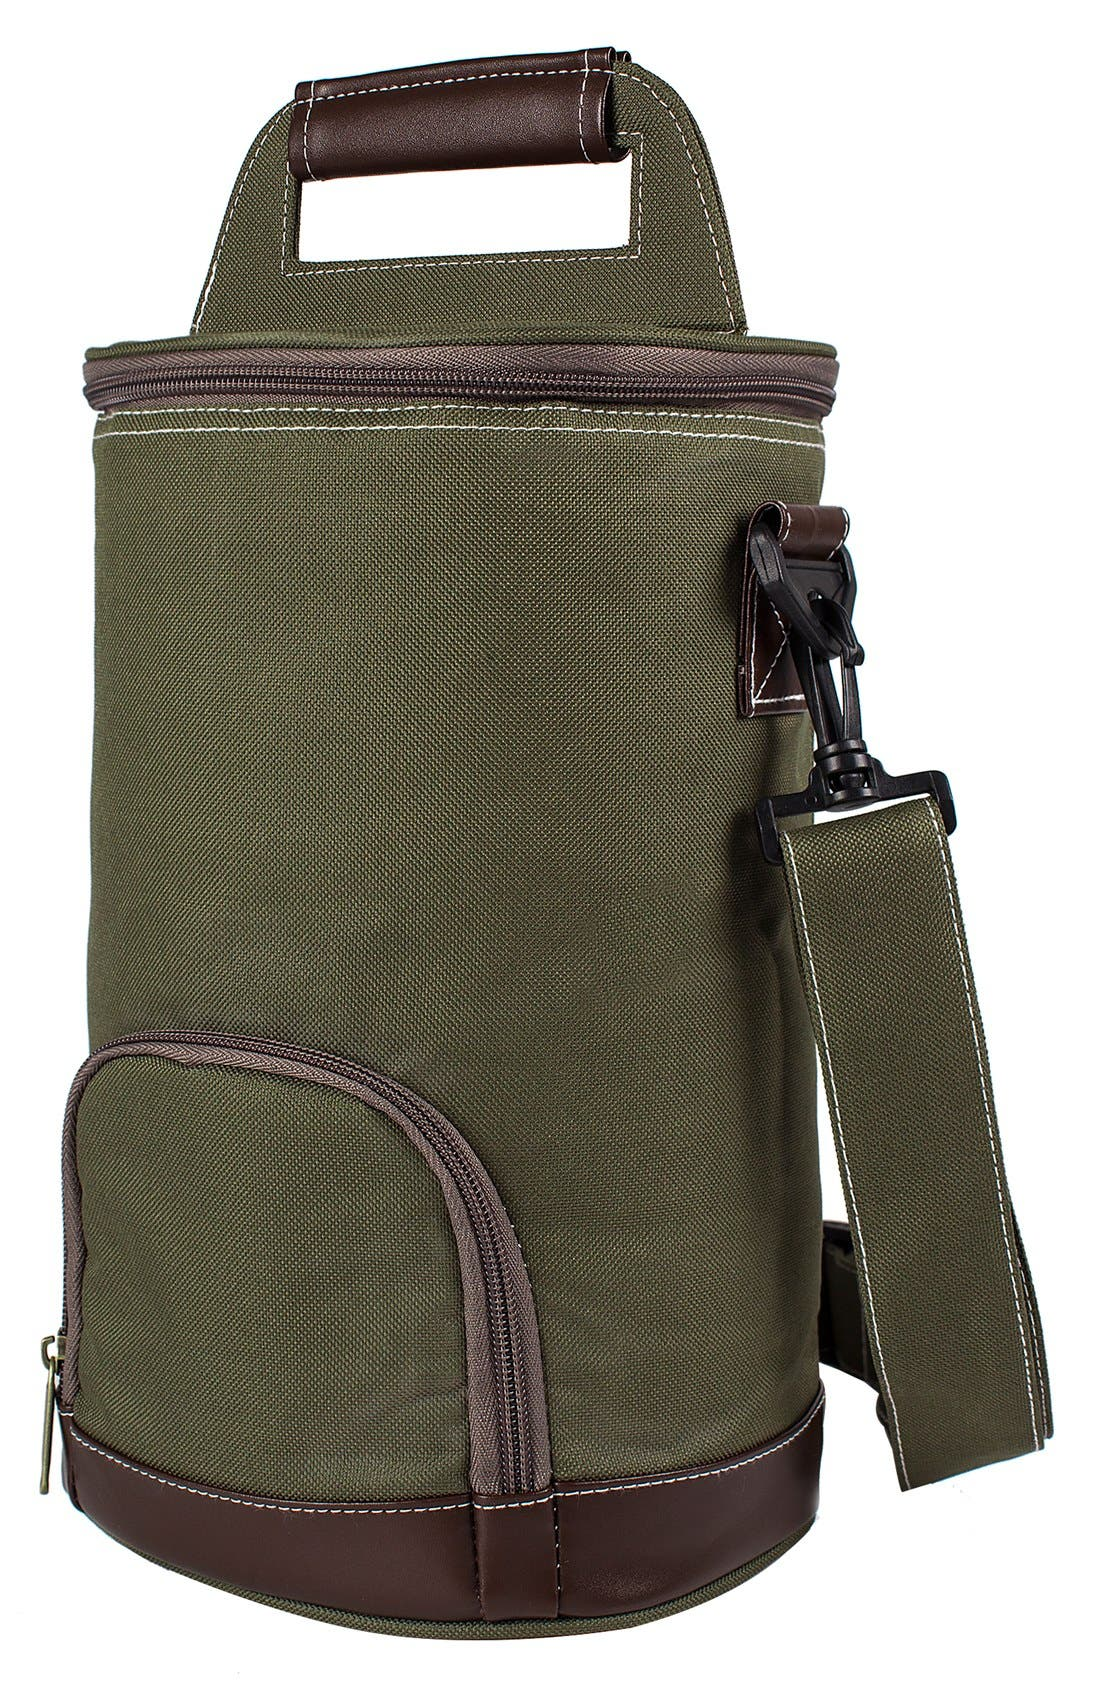 Monogram Insulated Growler Cooler,                         Main,                         color, Green - Blank